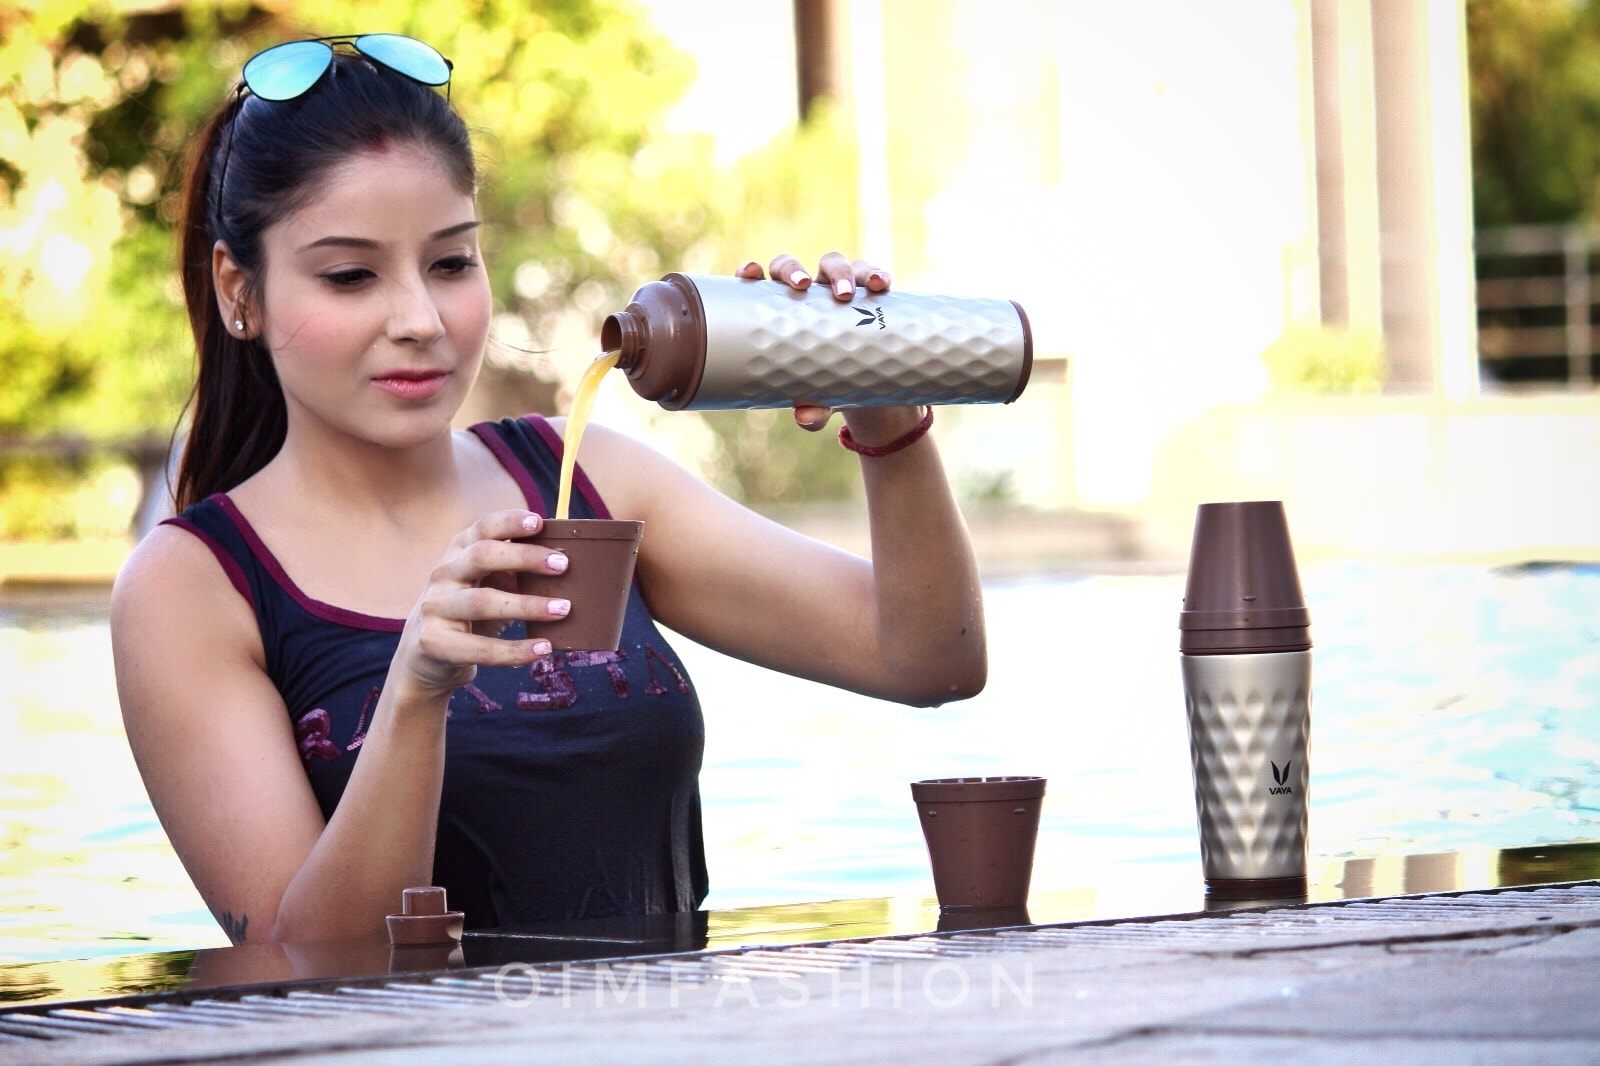 sippers, stylish sippers, gulpers, vaya India, vaya, Swimming pool photography, Tumblers, best tumblers online, stylish tumblers, vaya tumblers, Oimfashion, summer fashion, pool side photography, how to style in summers, tumblers with glasses, reflectors, hair bun,